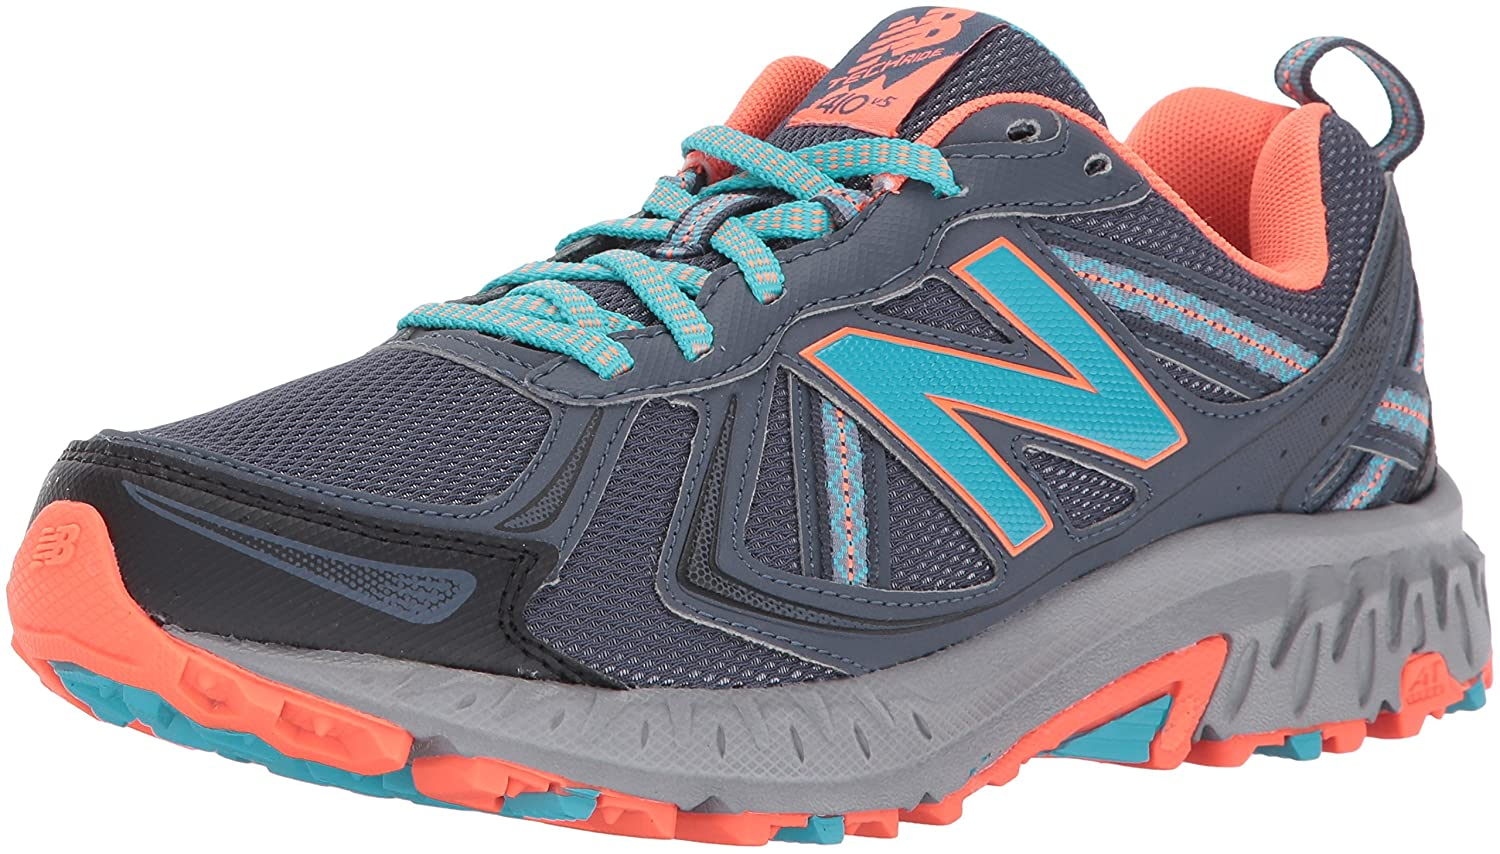 New Balance Women's WT410v5 Cushioning Trail Running Shoe B01LXGCI9E 5.5 D US|Dark Grey